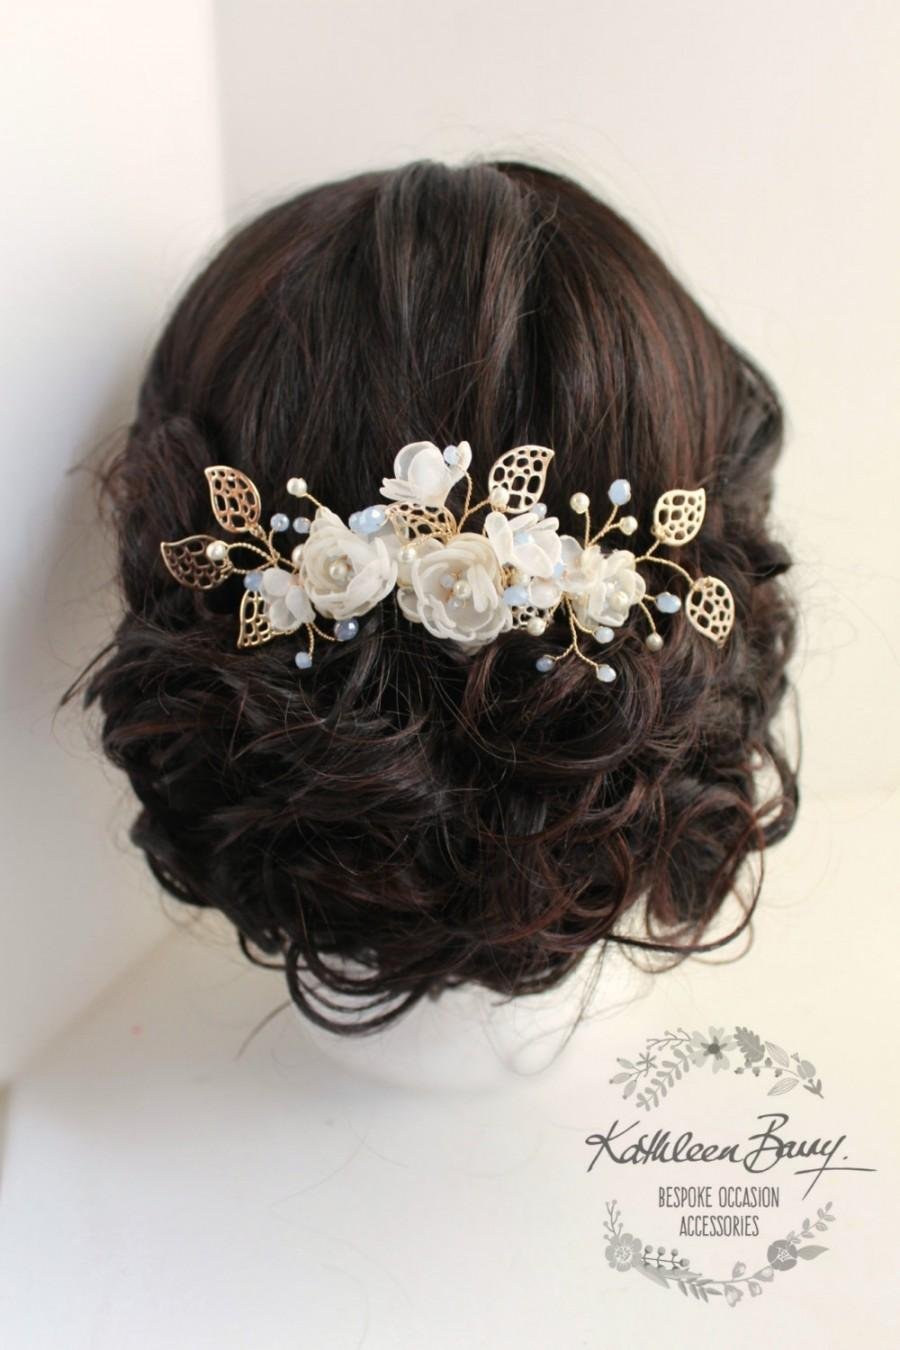 Rose gold wedding hair accessories - R790 Soft Gold Rose Gold Hair Comb Hairpiece Soft Blue Wedding Bridal Hair Veil Comb Colors To Order Baby Blue Cream Ivory